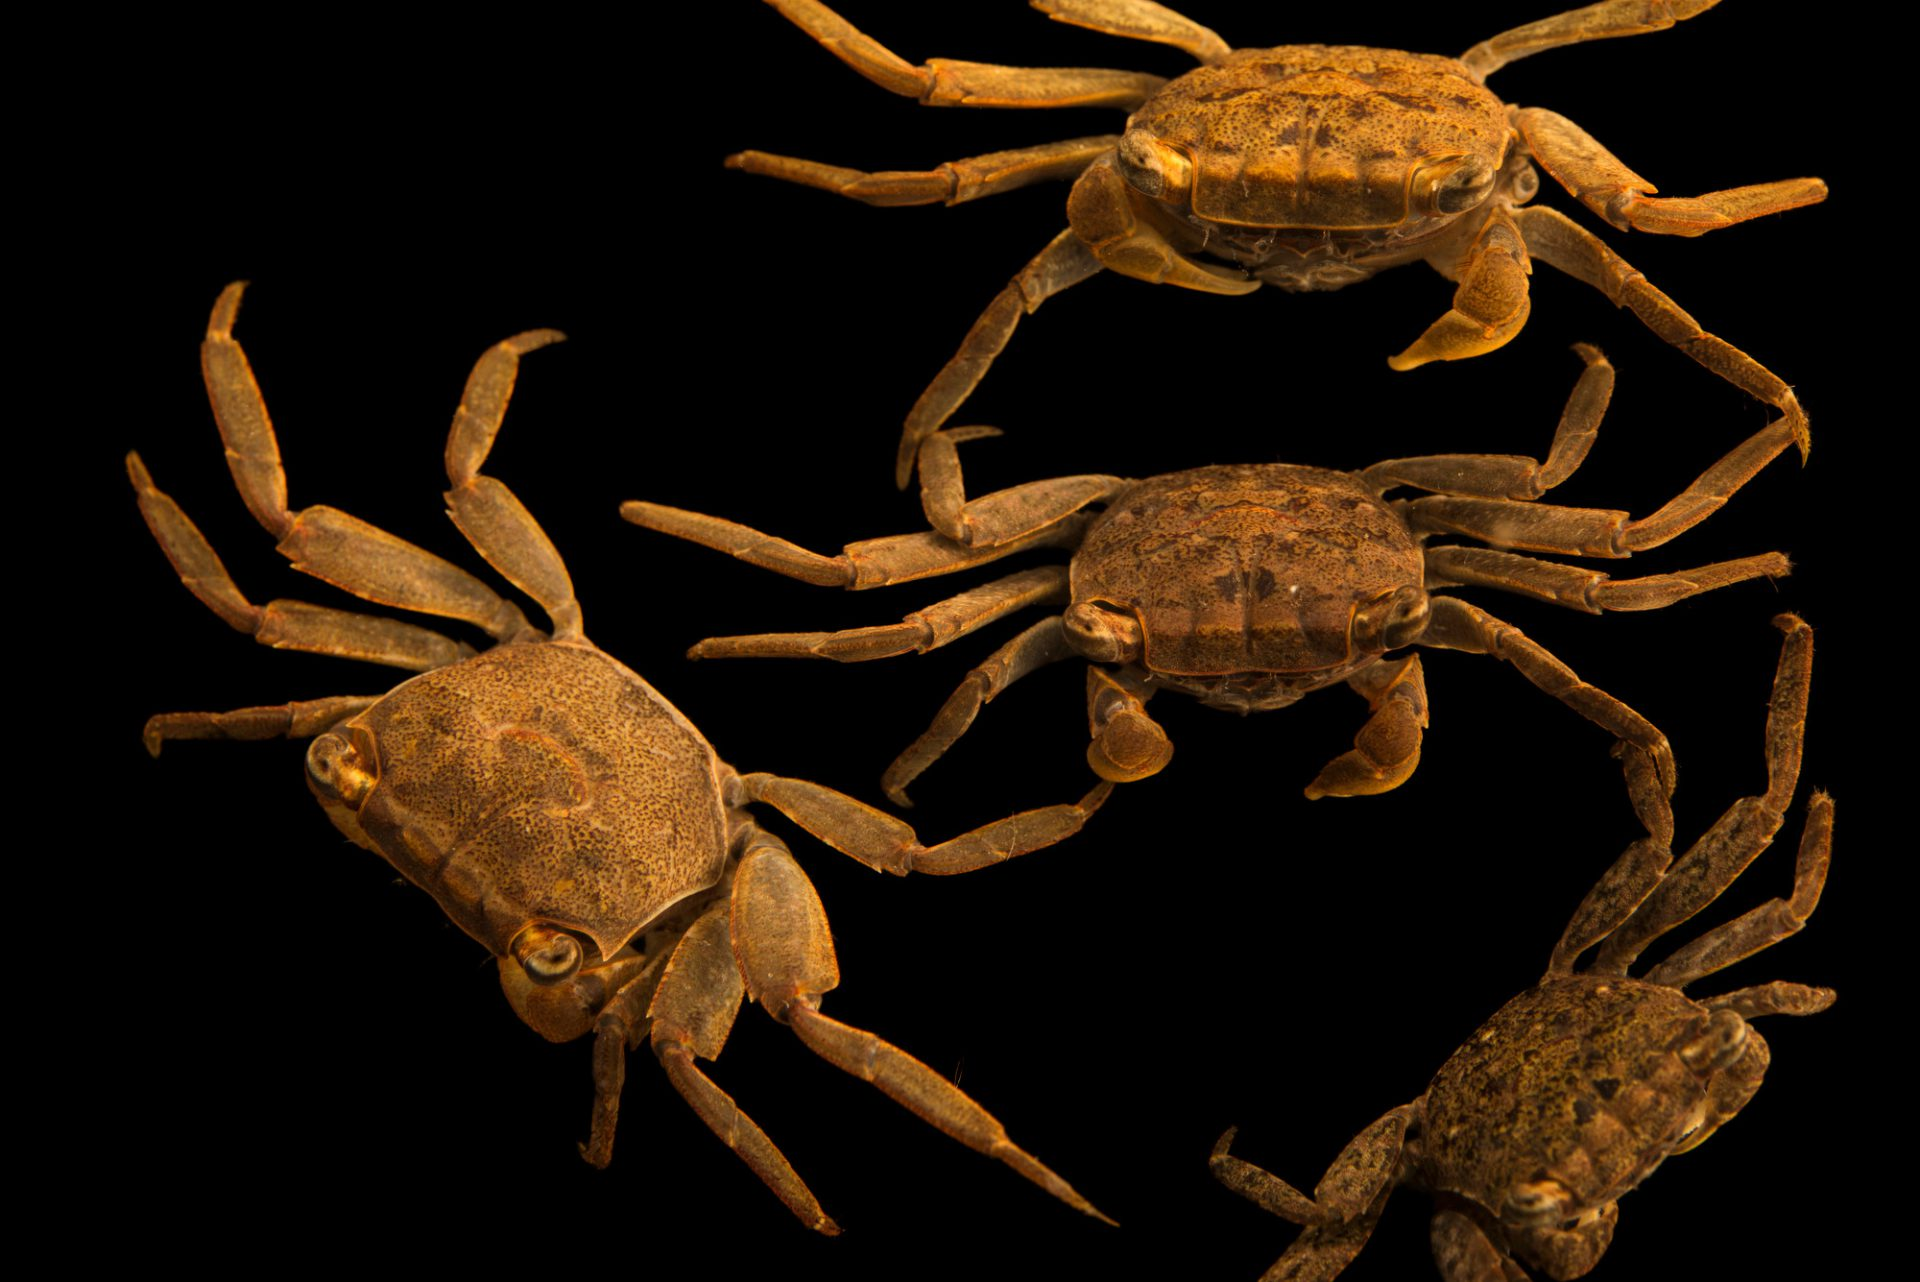 Photo: Black marsh crabs (Sesarma cinereum) at Gulf Specimen Marine Lab and Aquarium.